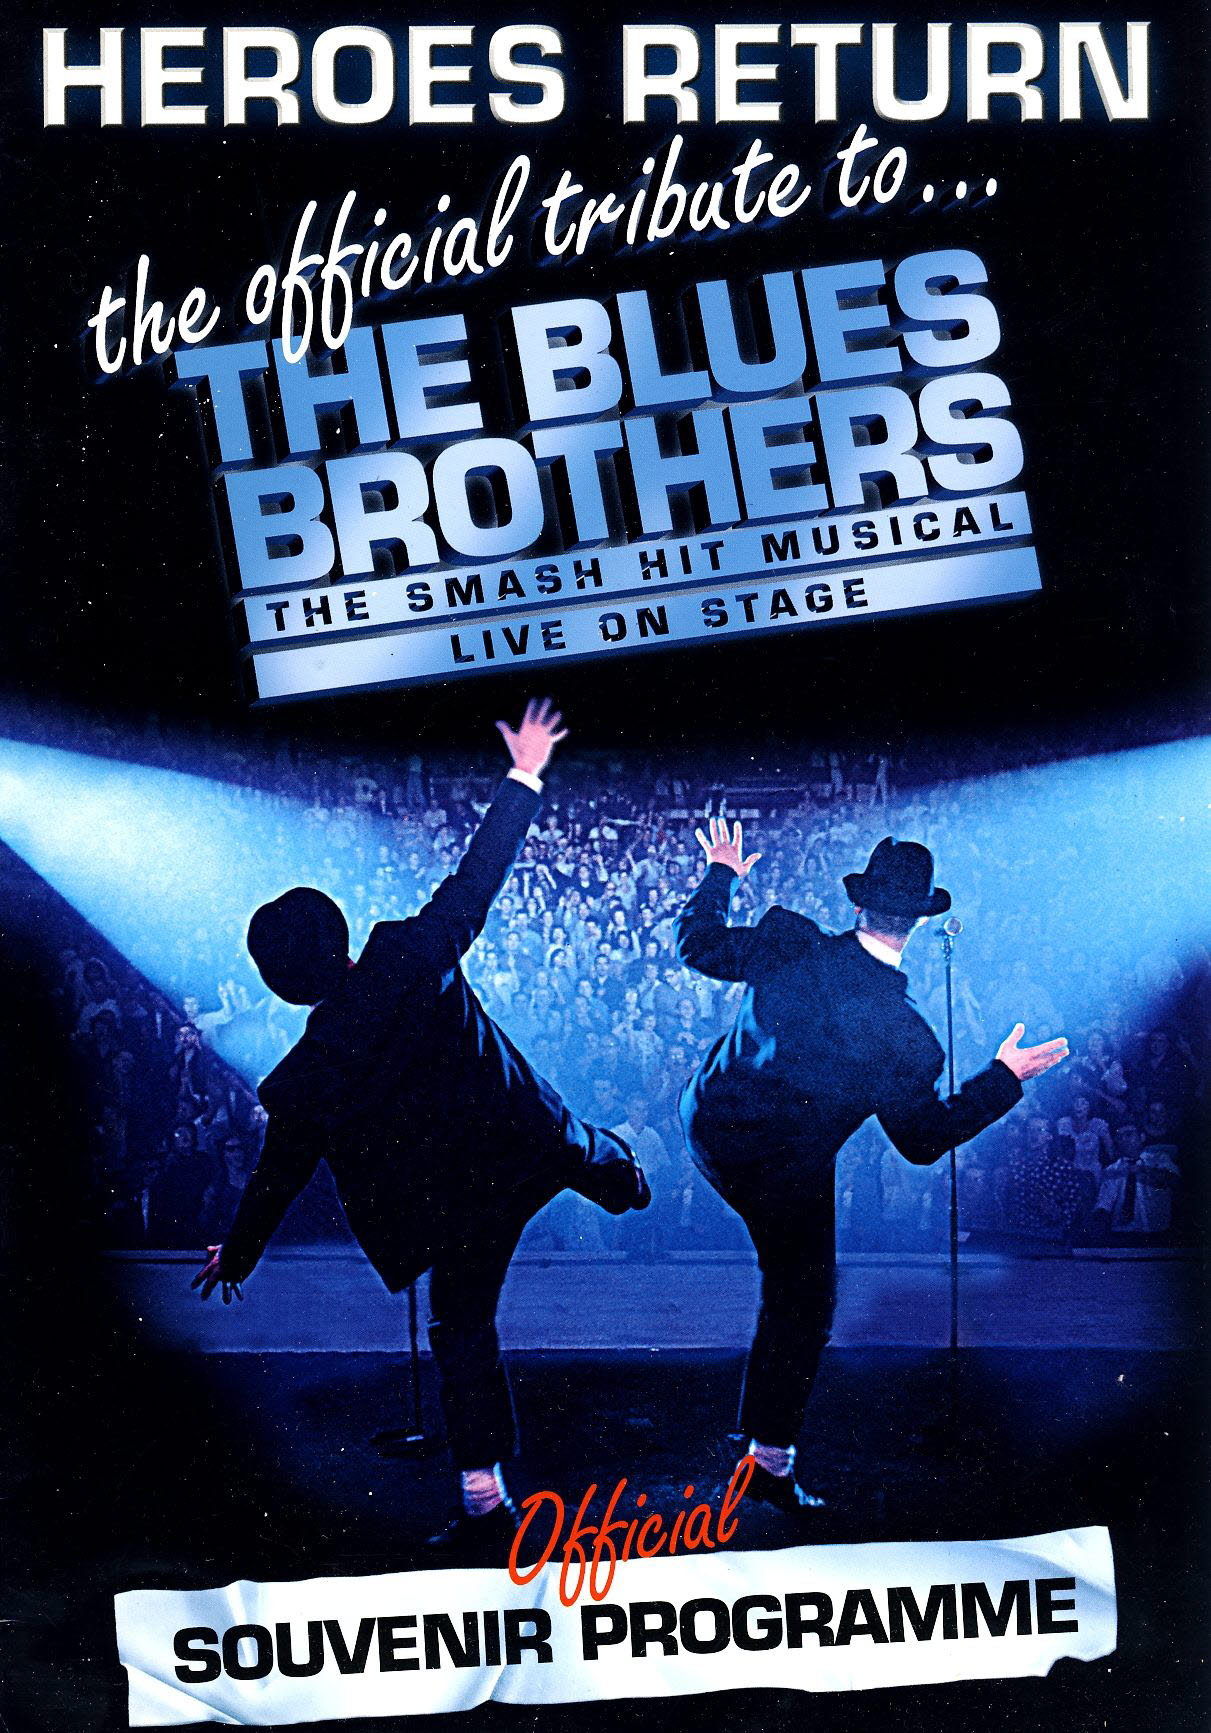 Tribute to The Blues Brothers Official Souvenir Programme HEROES RETURN refb101188 Pre-owned Programme in Good Condition. Measures approx 21cm x 29.5cm Undated